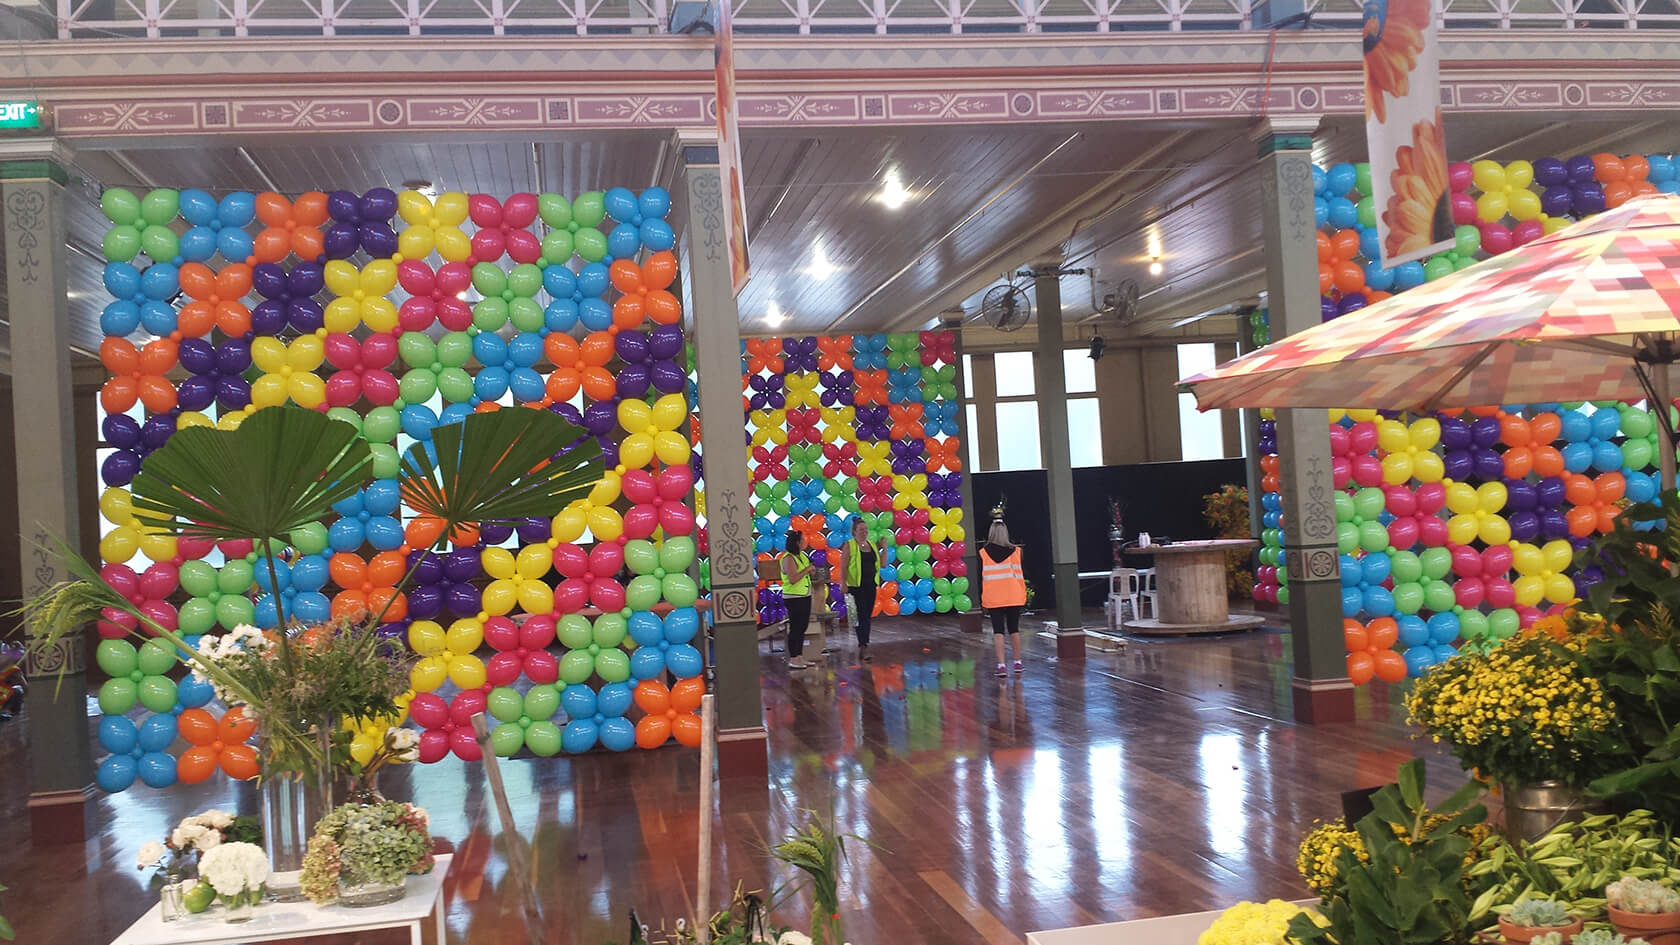 Wall Balloon Decors - see our events - balloon designs - shivoo balloons and decor specialists in coburg north